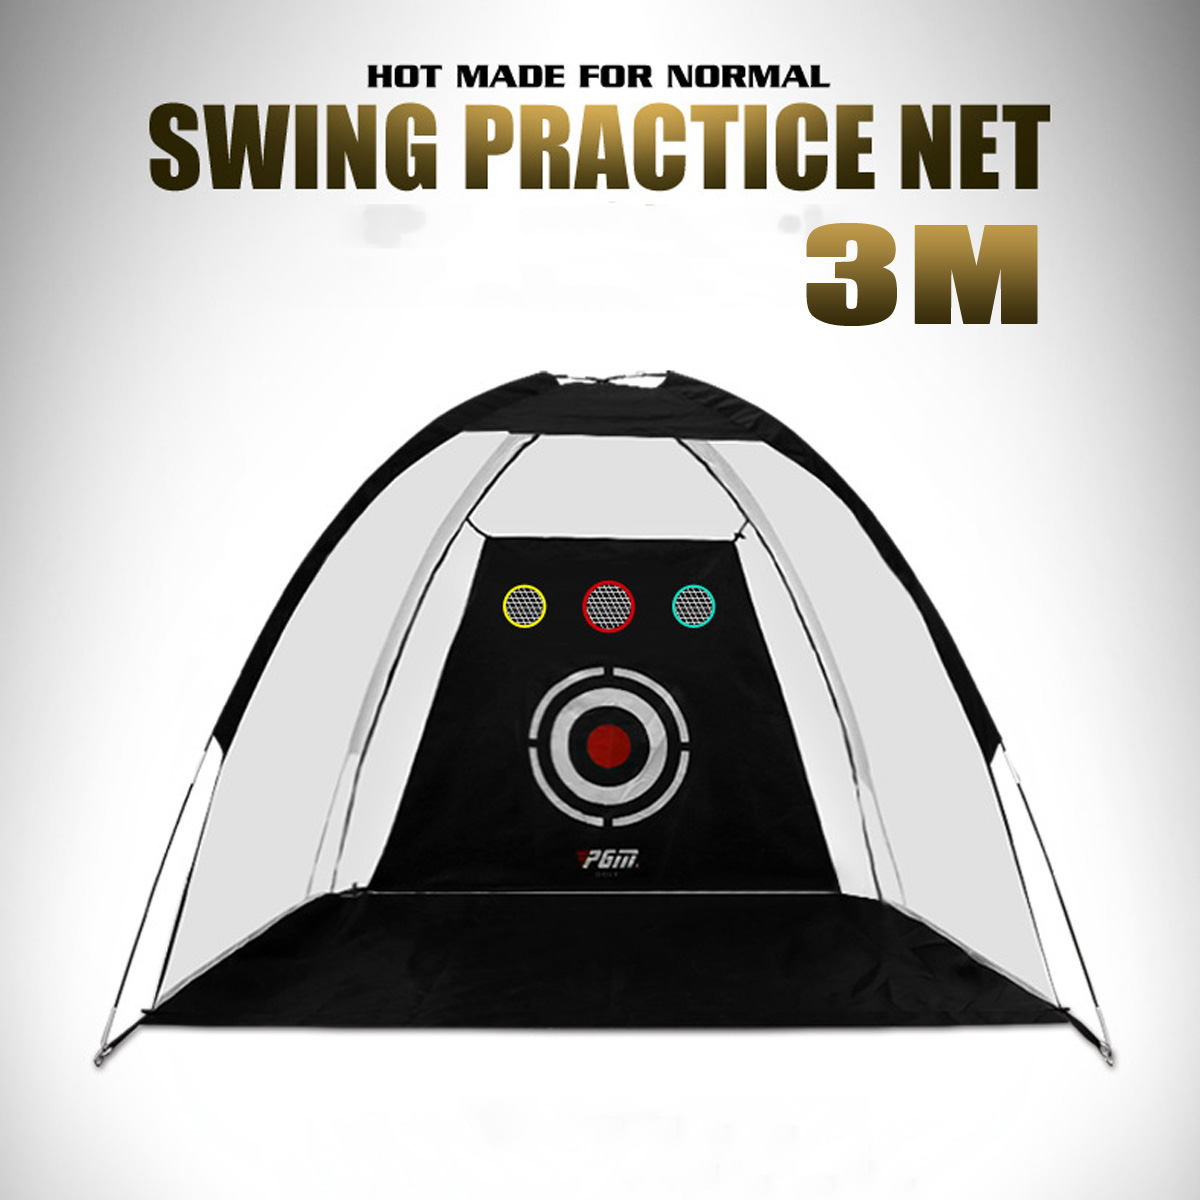 Golf Training Net Foldable Hitting Target Tent Cage Practice Driving Soccer Durable Polyester Oxford Cloth  2 X 1.4m/2 X3m